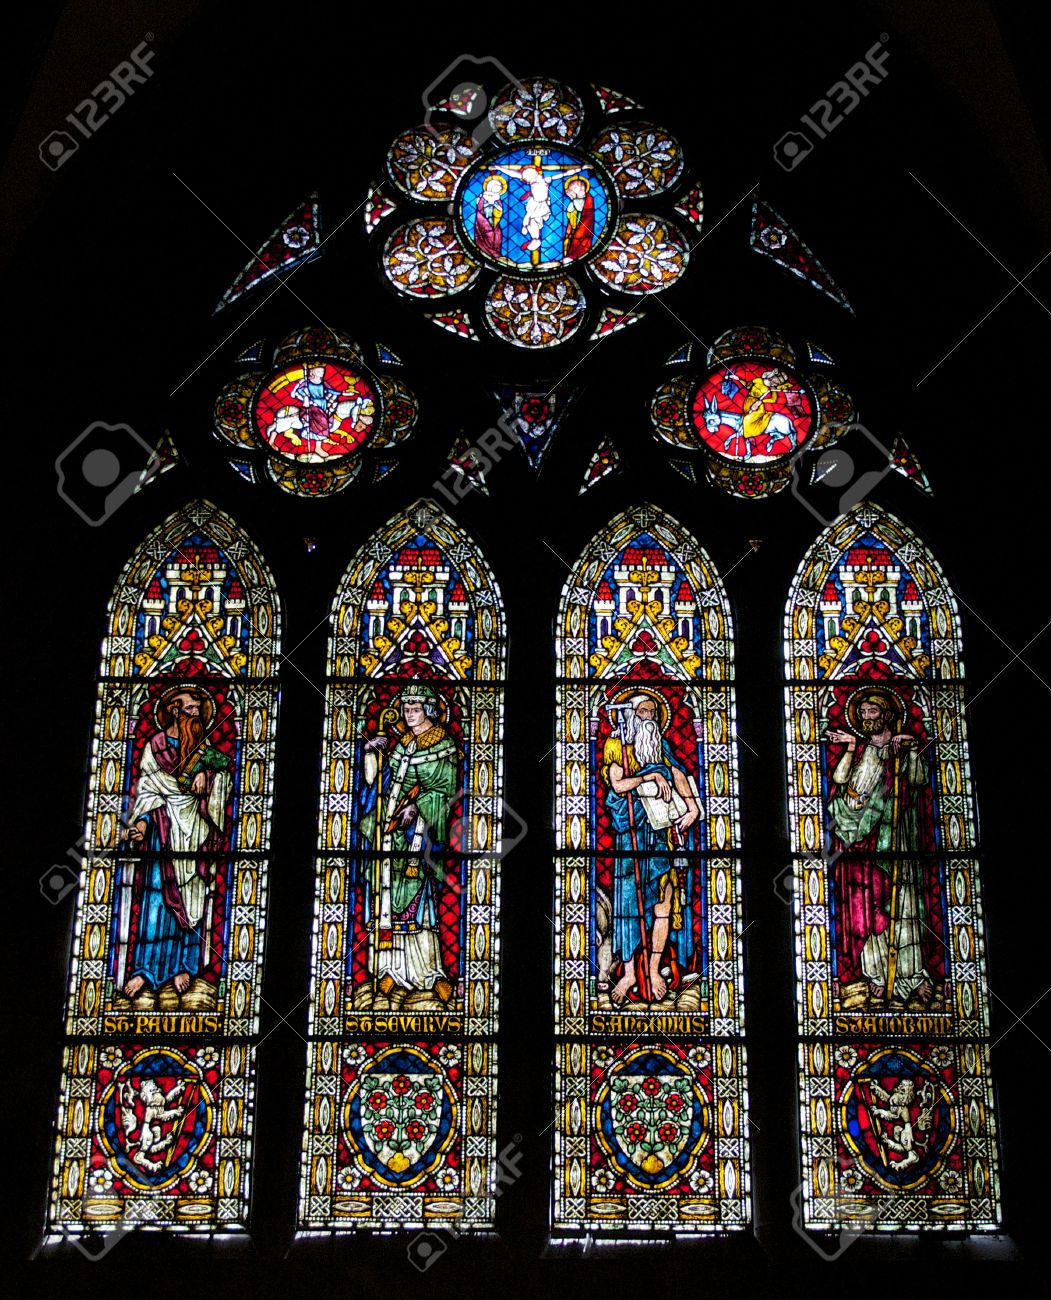 Beautiful Stained Glass Window In The Famous Gothic Cathedral Of Freiburg City Germany Stock Photo